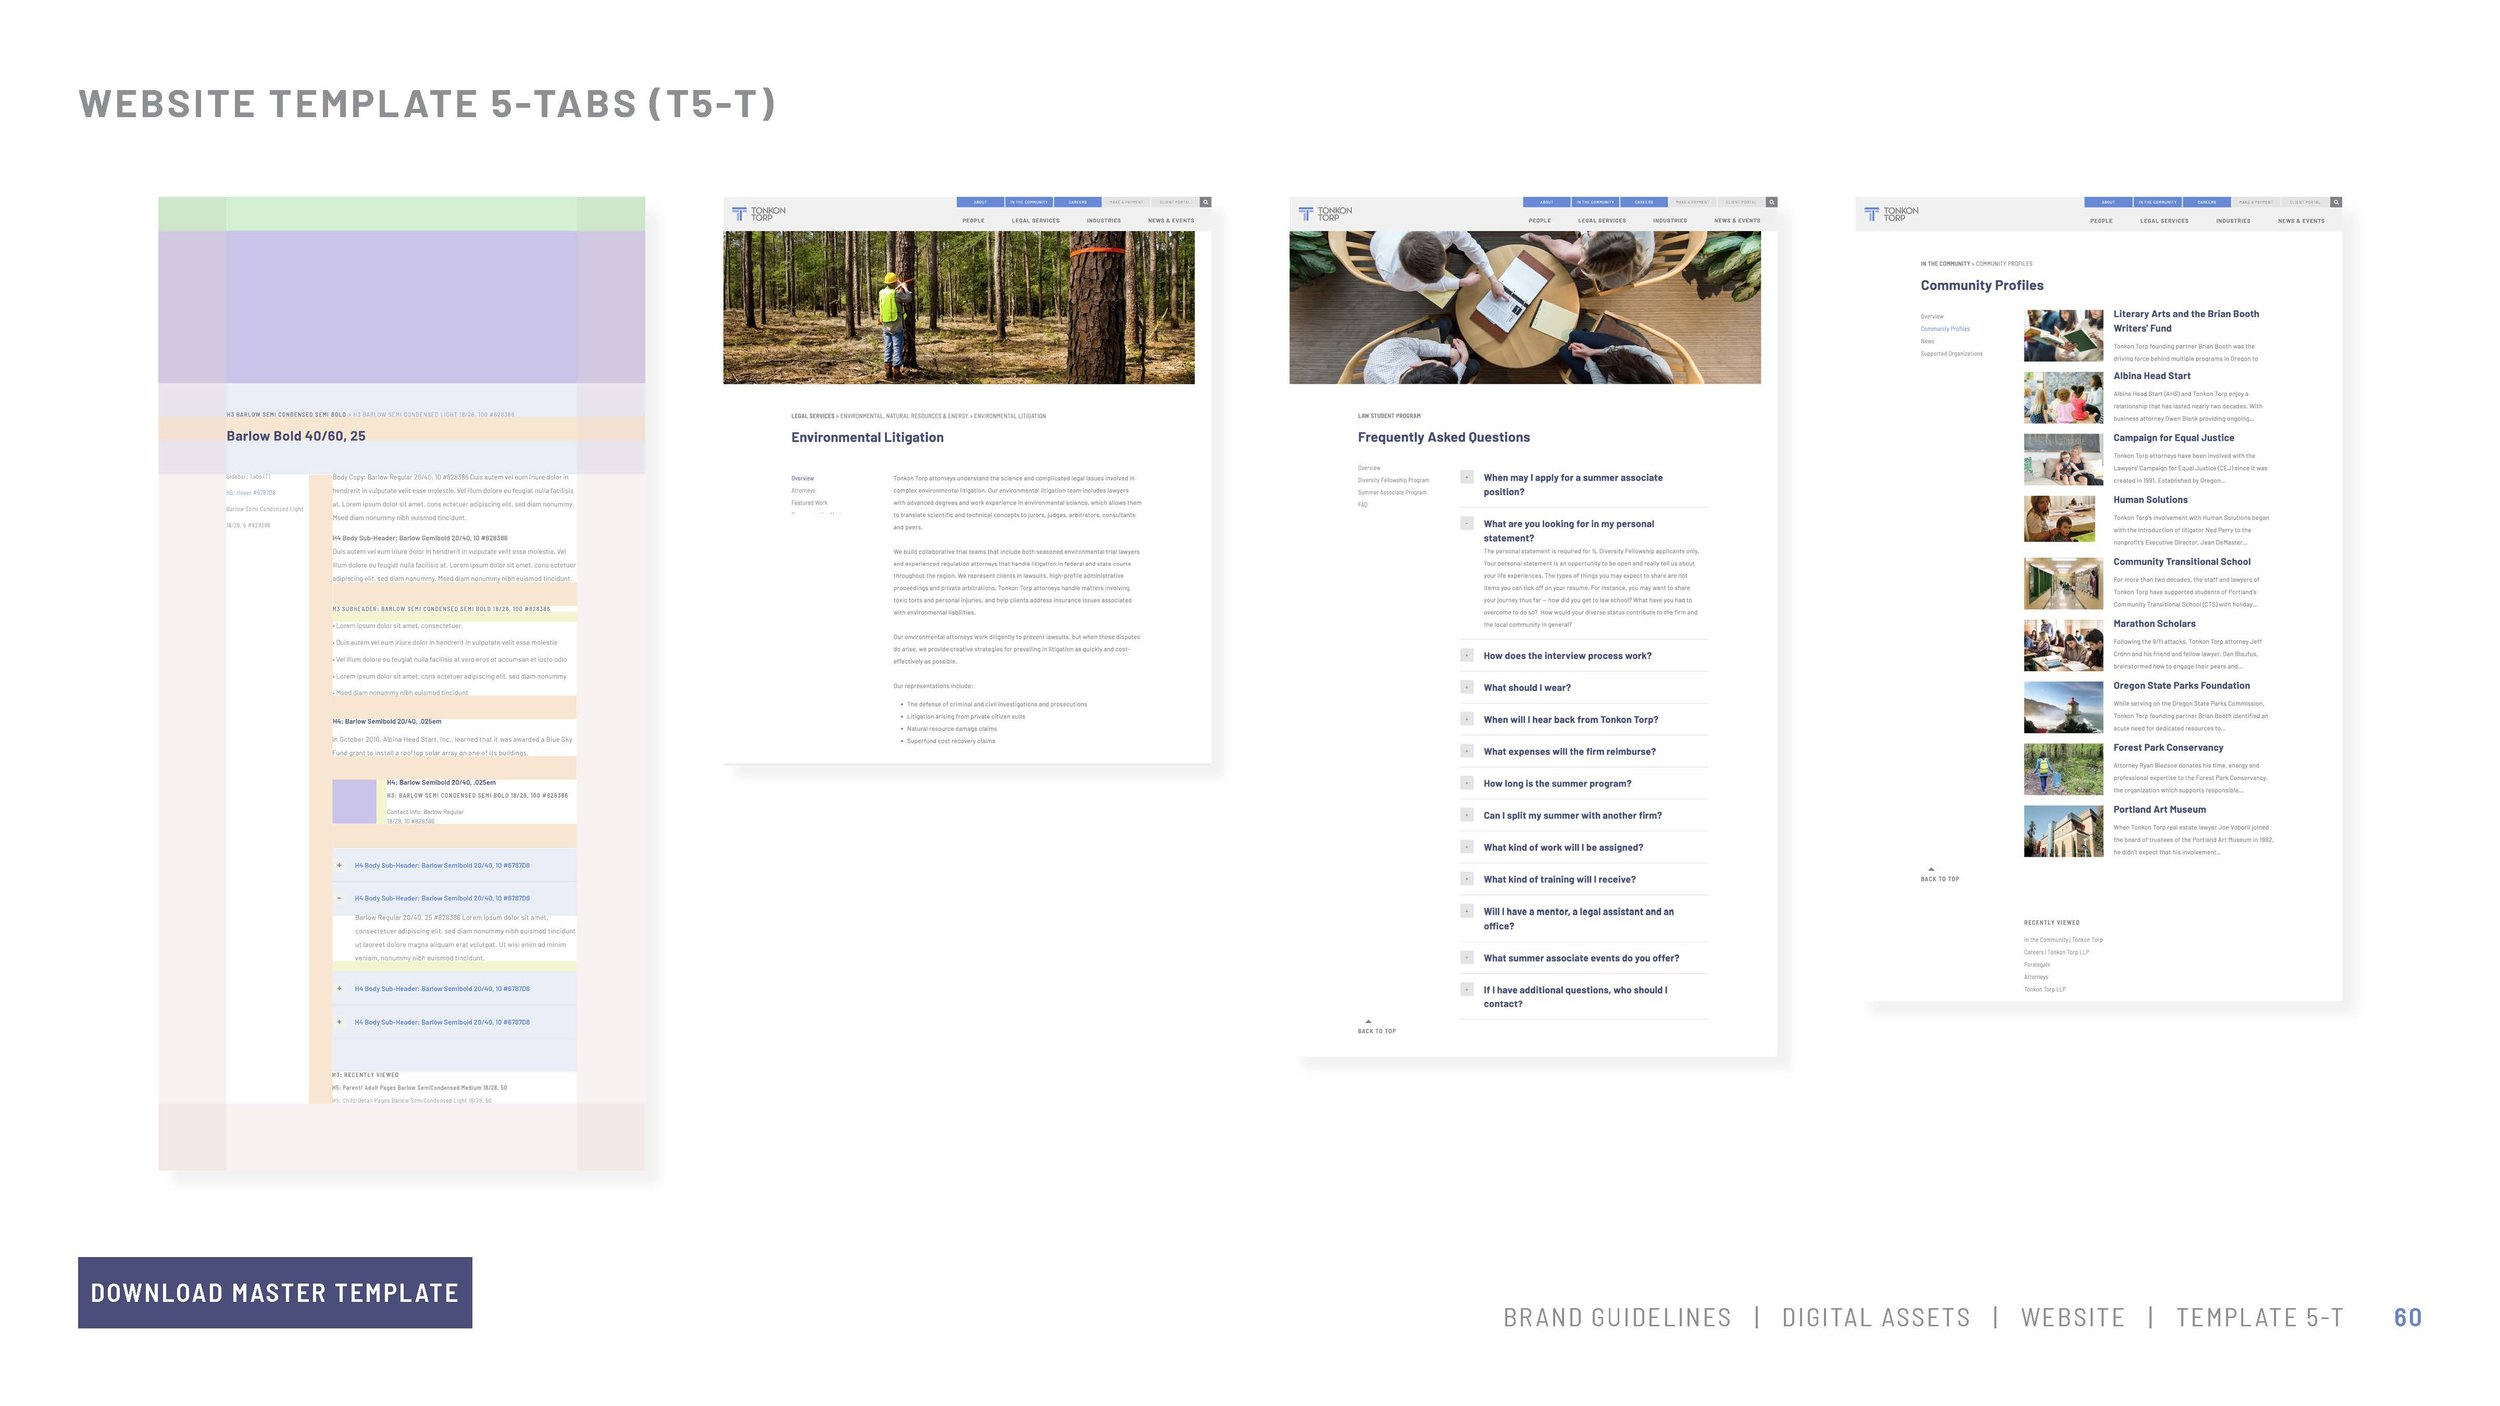 TTL_Brand Guidelines_Rd2_Page_60.jpg